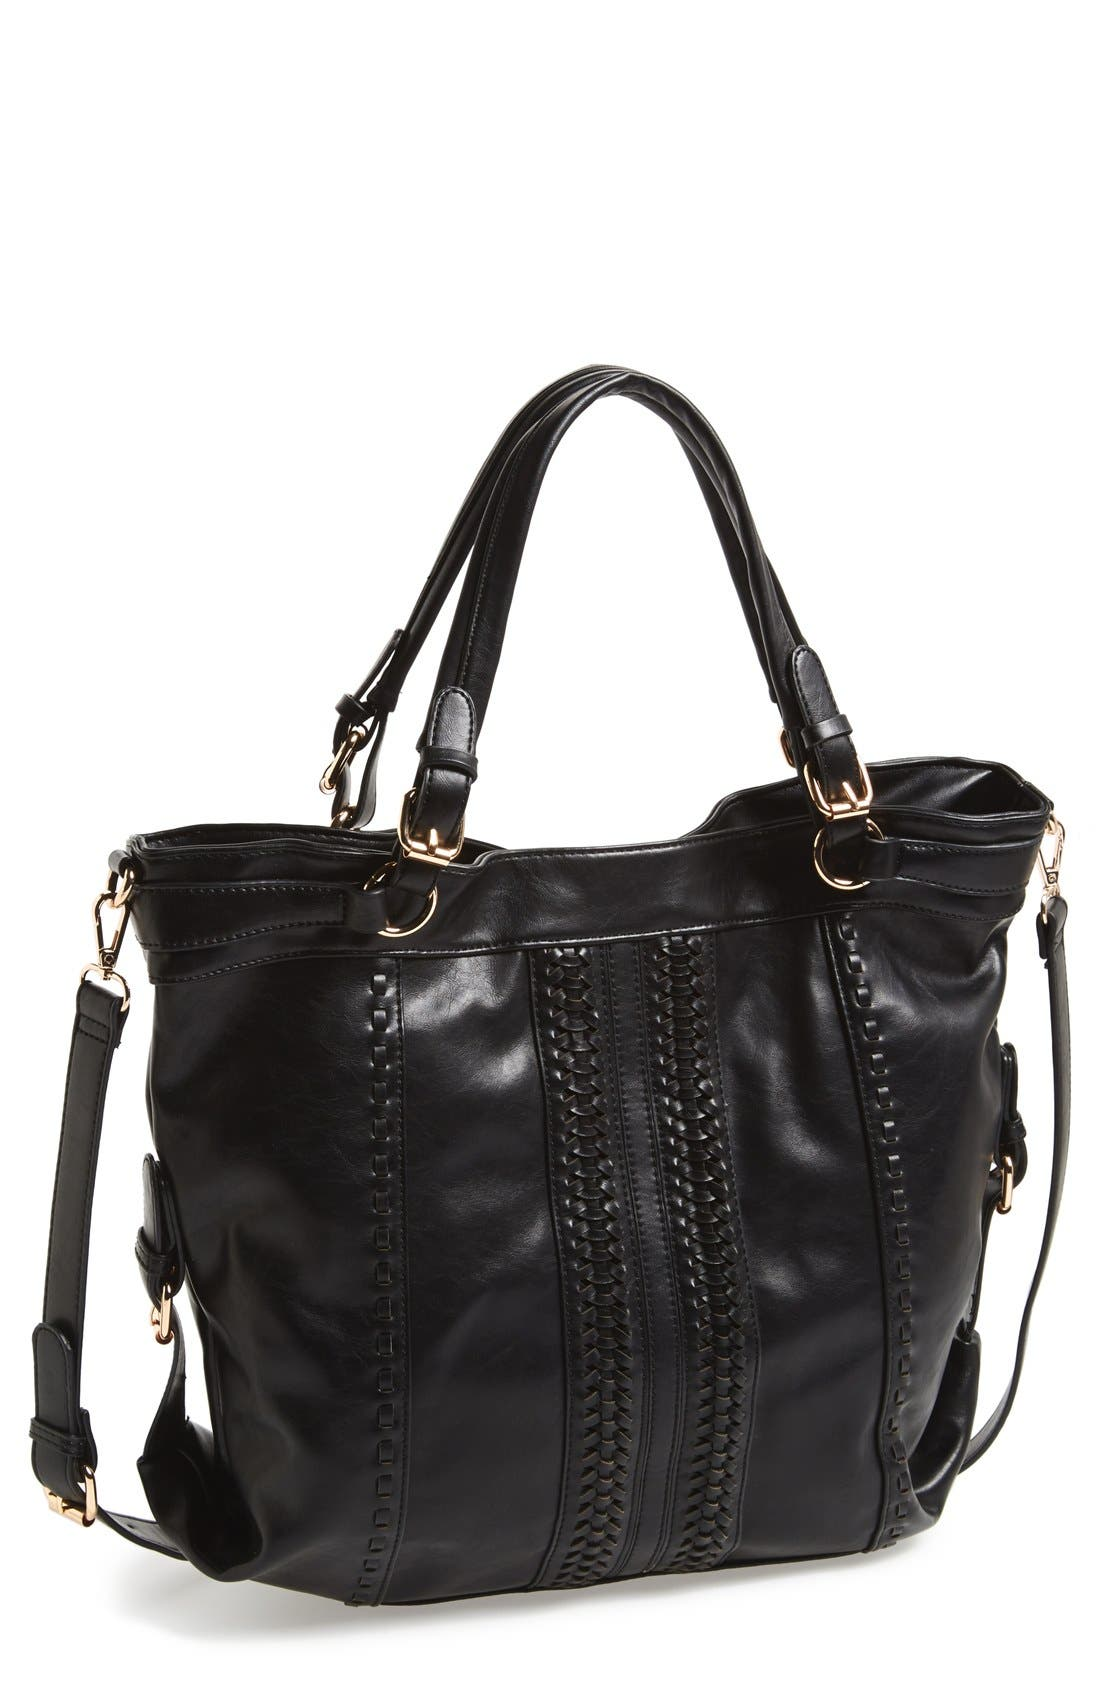 Main Image - Sole Society 'Oversize' Woven Faux Leather Shoulder Bag